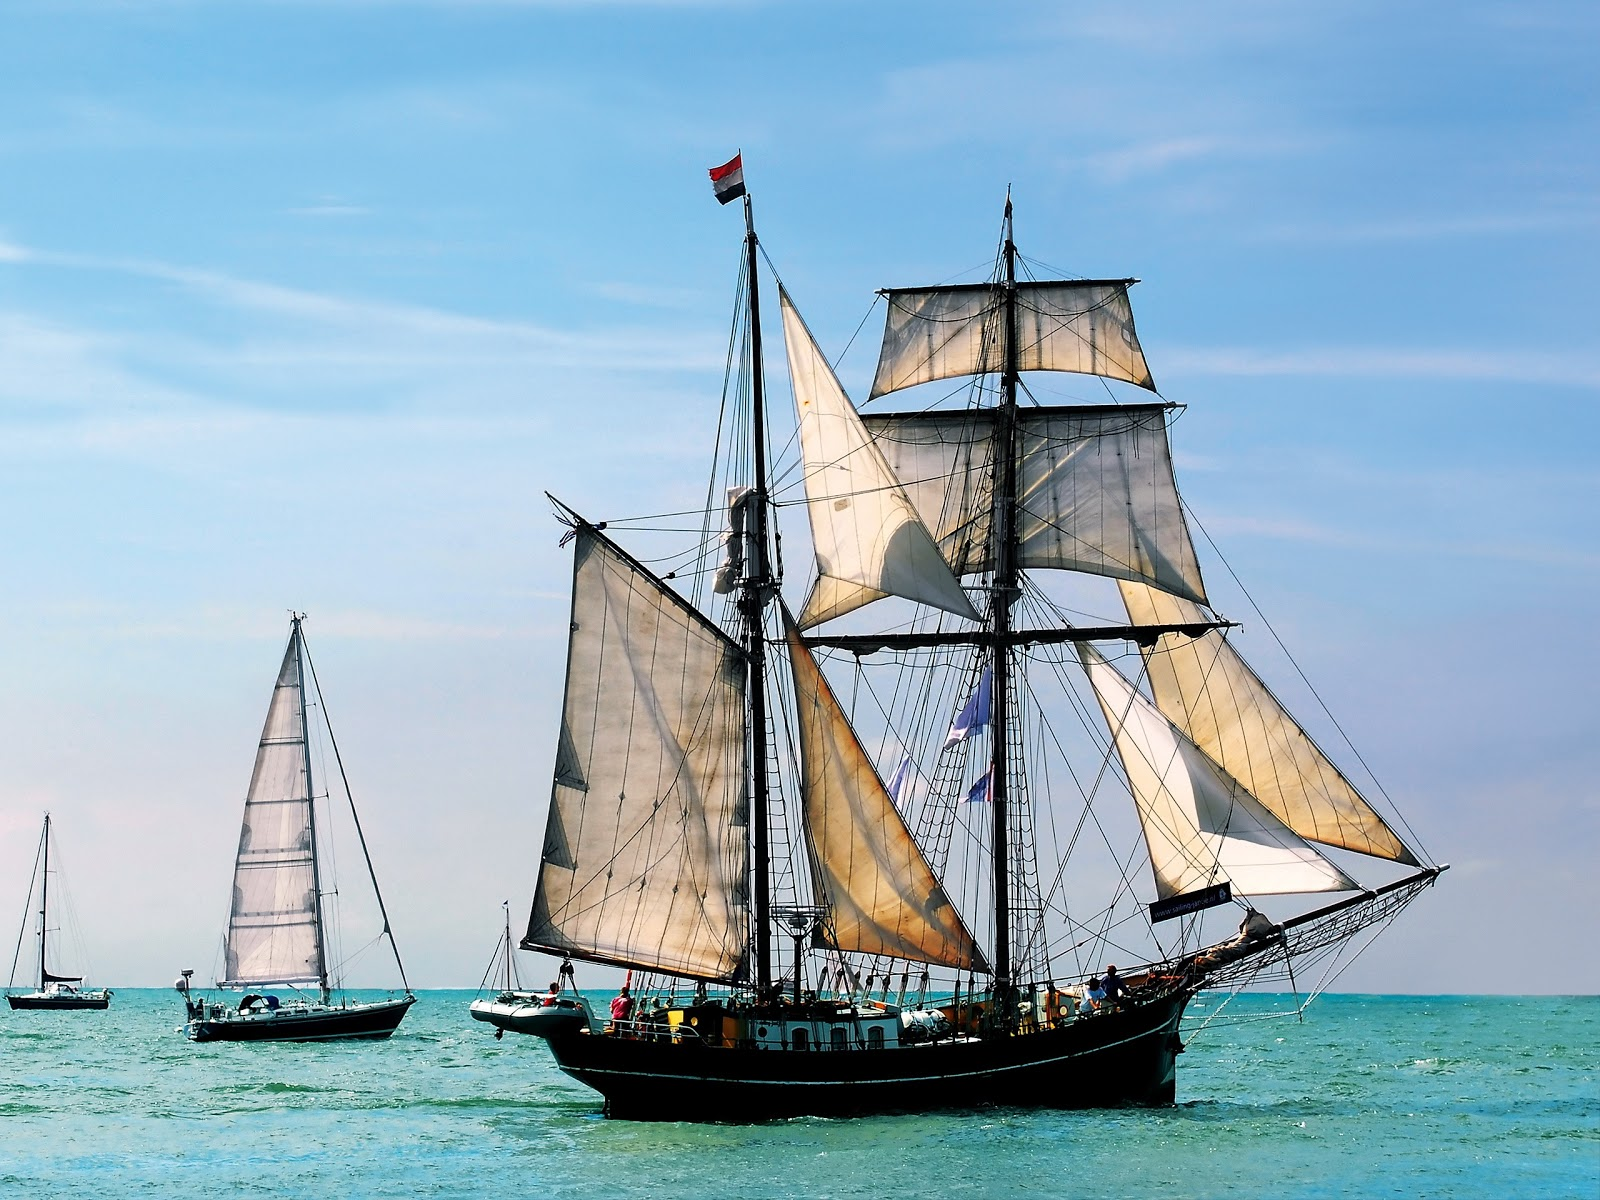 Pirate Ships Awesome HD Wallpapers| HD Wallpapers ...